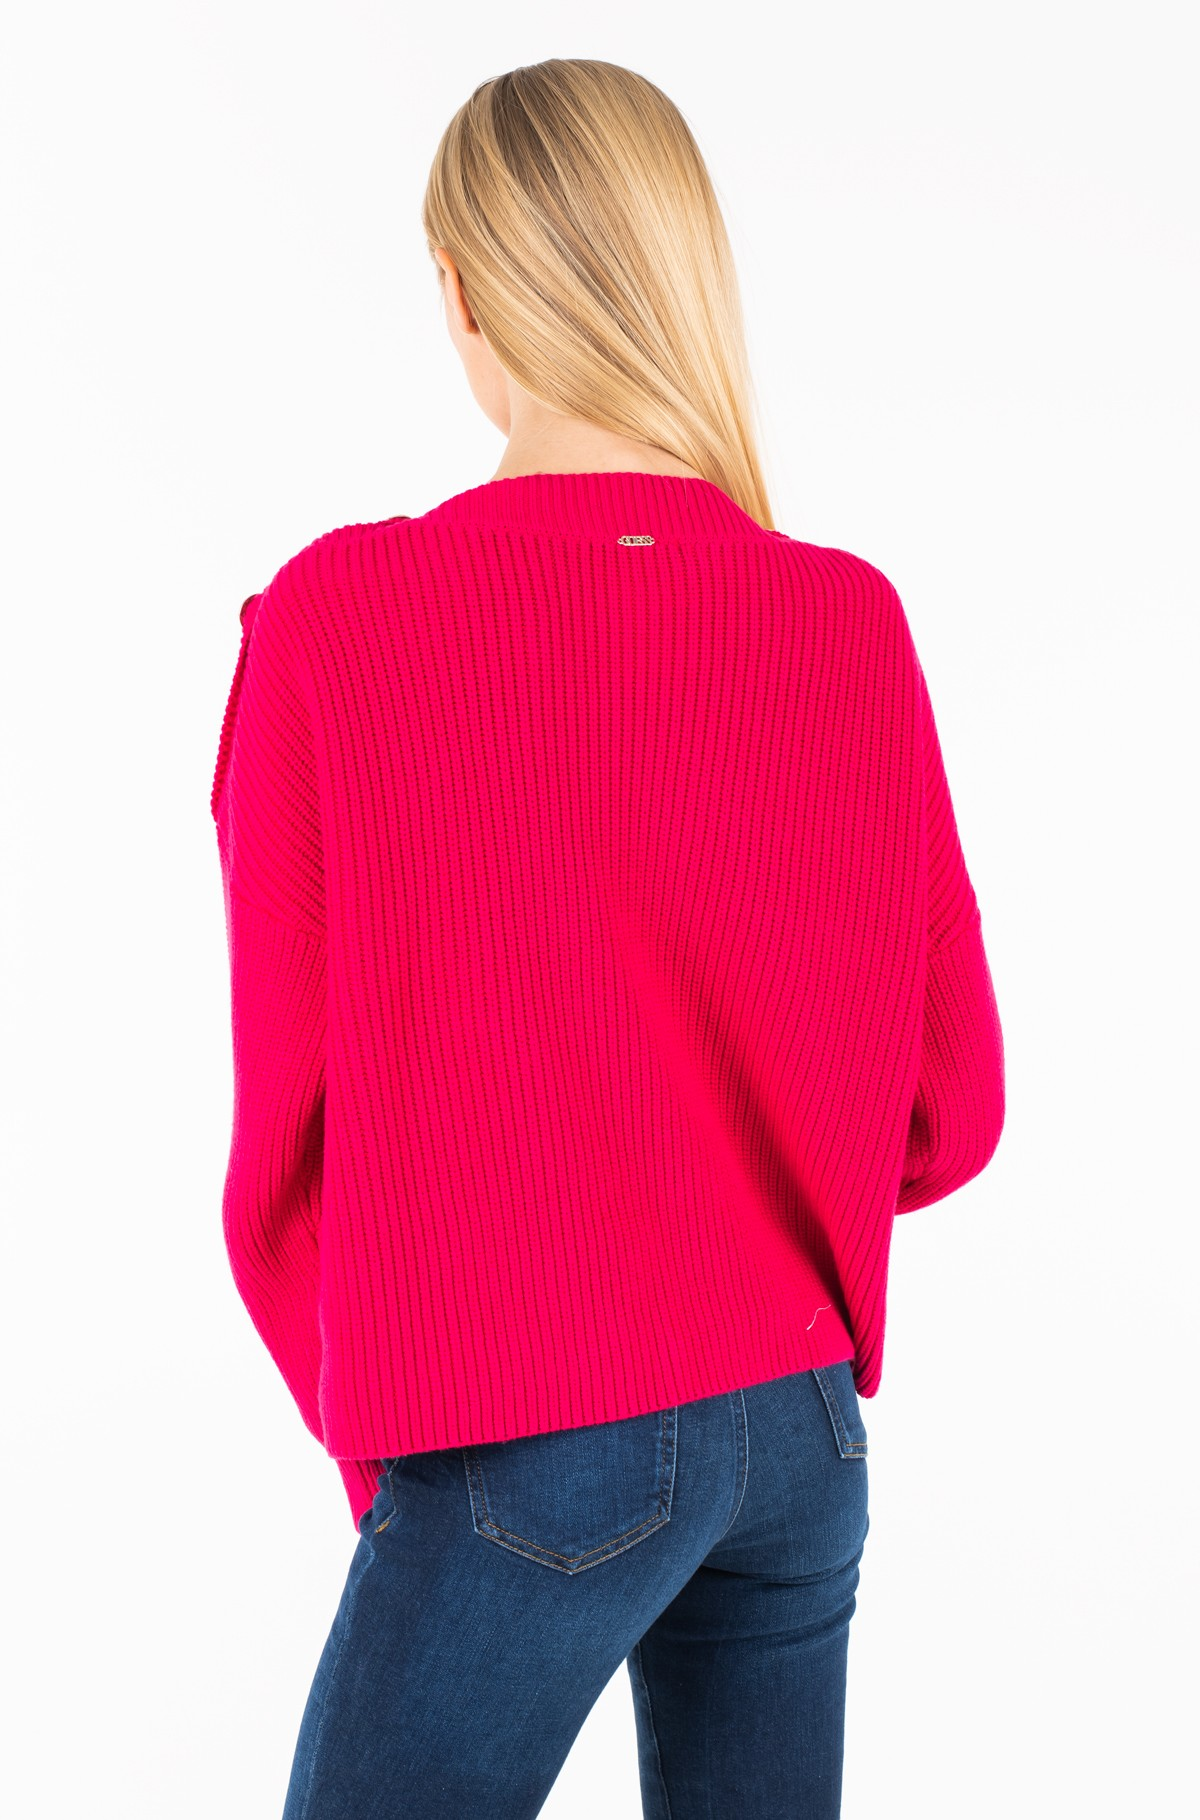 Sweater W91R78 Z2BB0-full-2